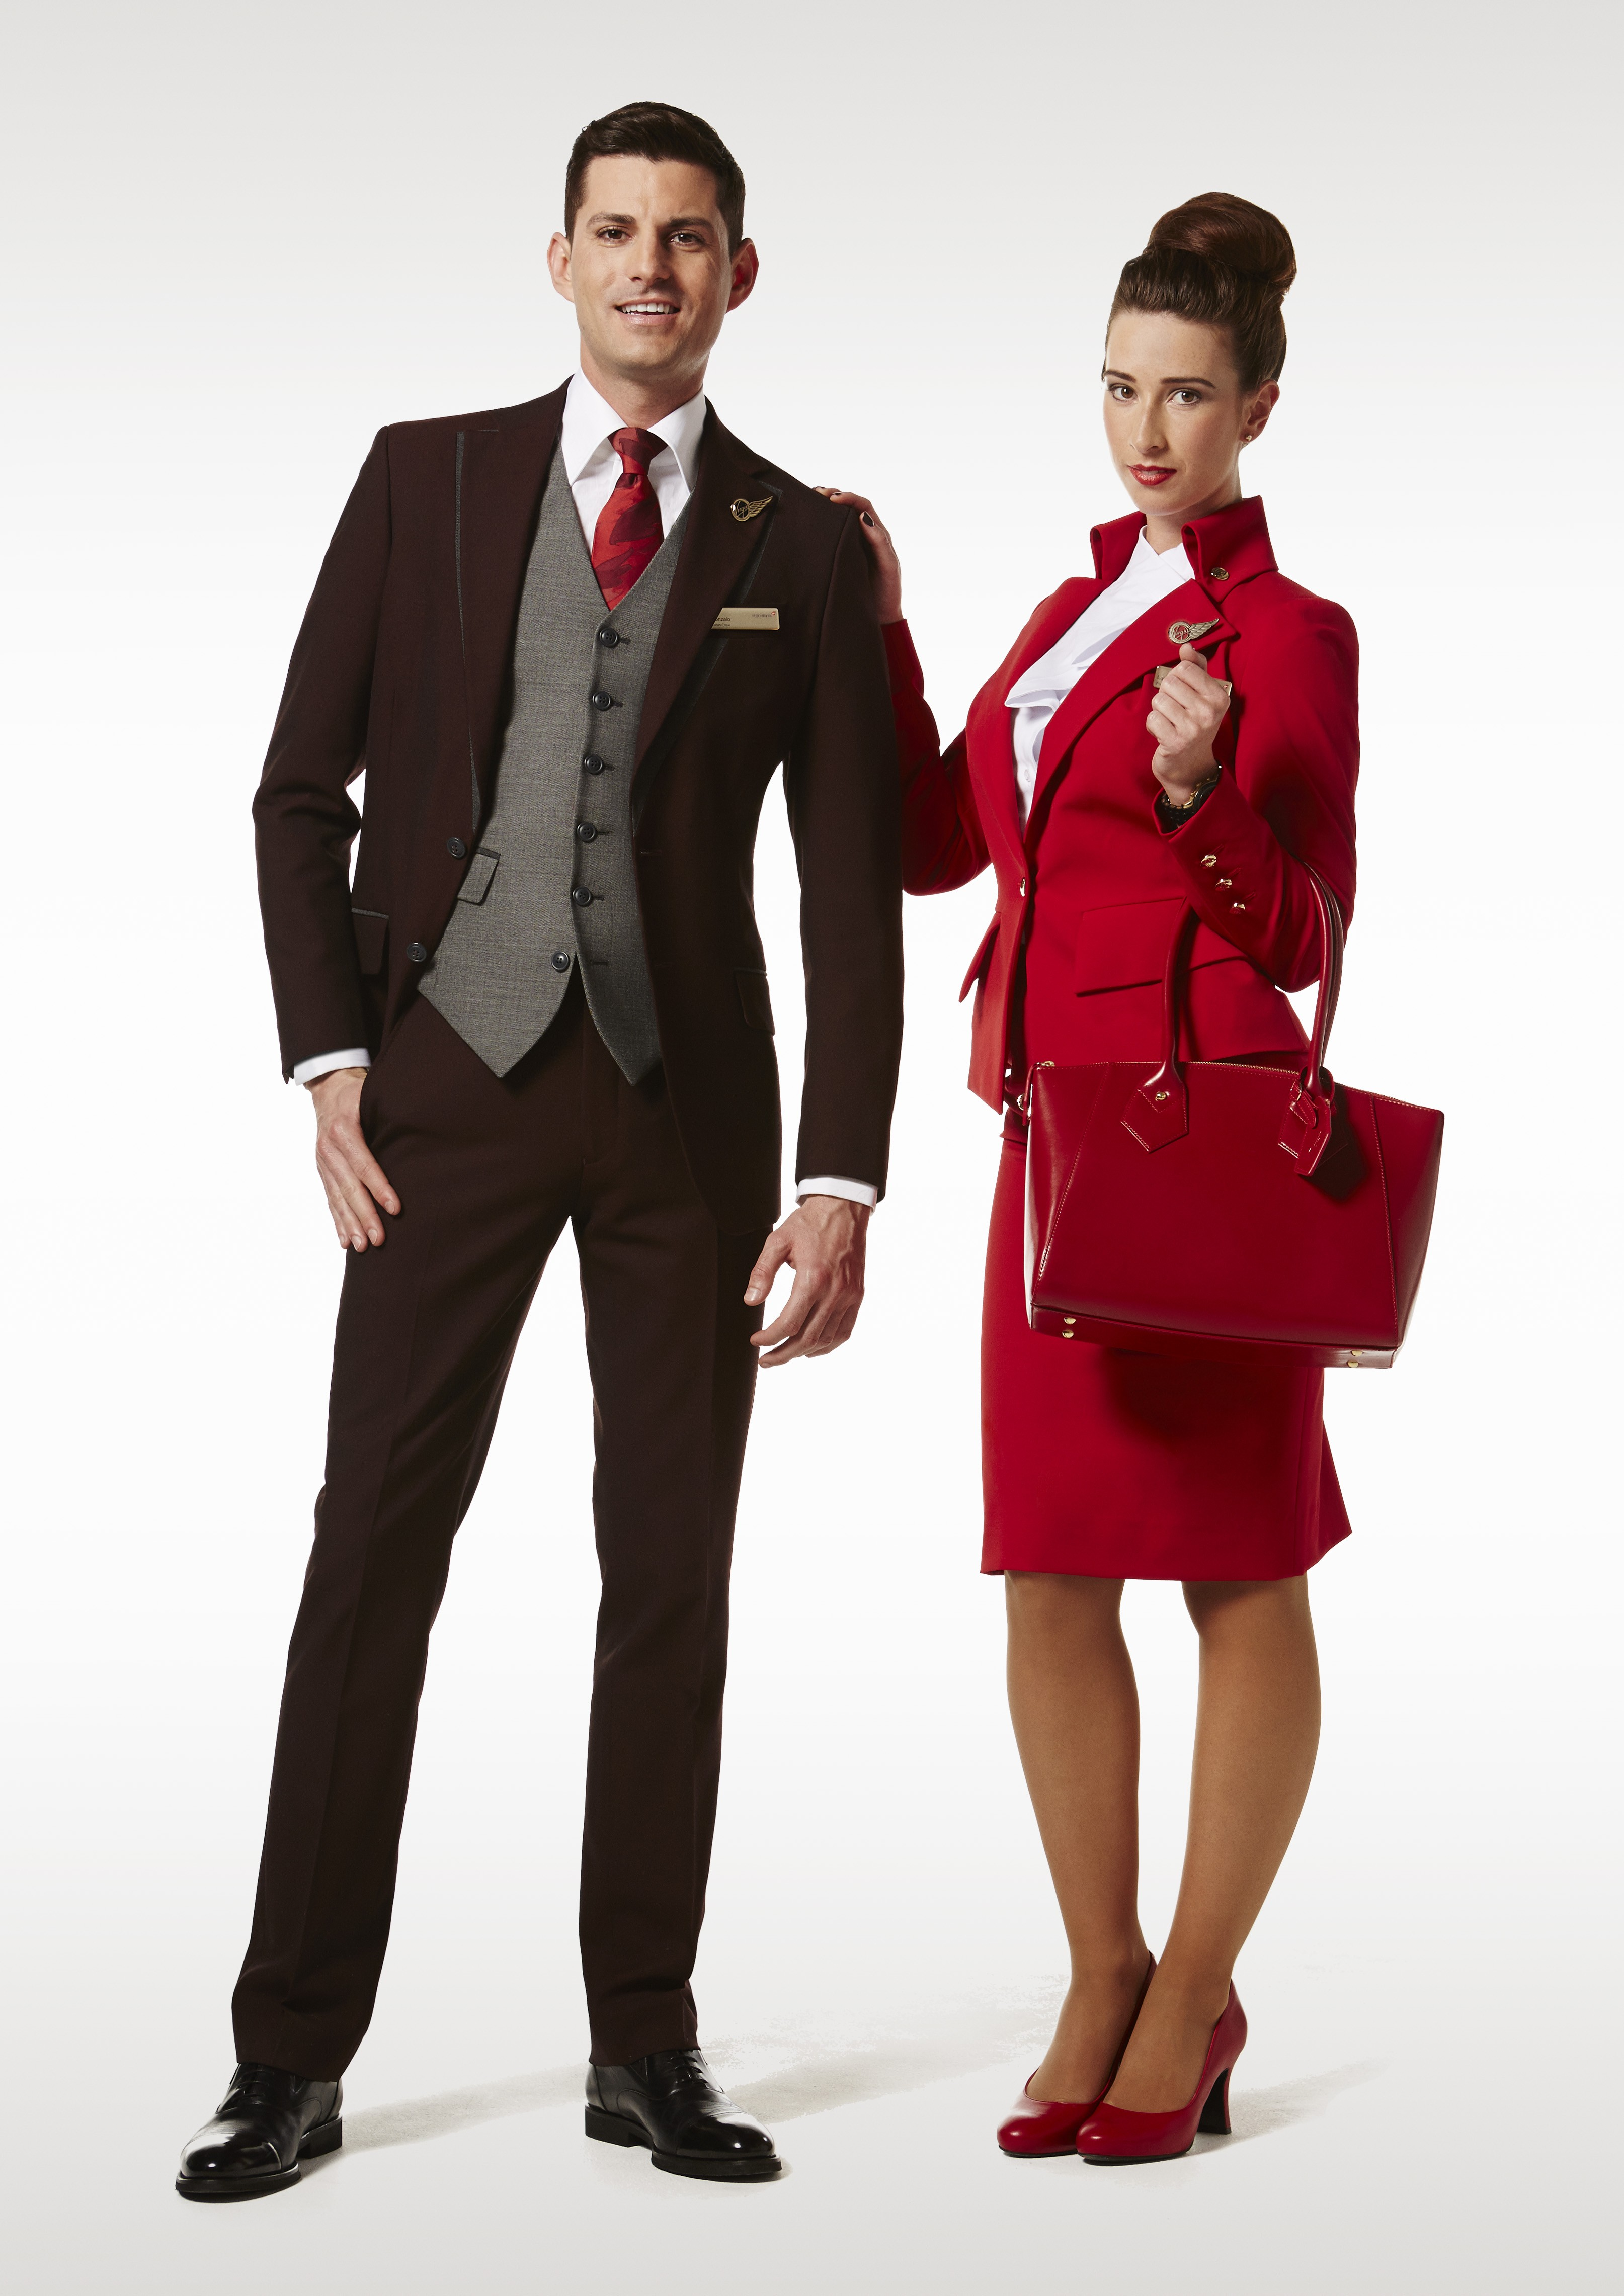 Airline Uniforms by famous designers - SKYPRO News